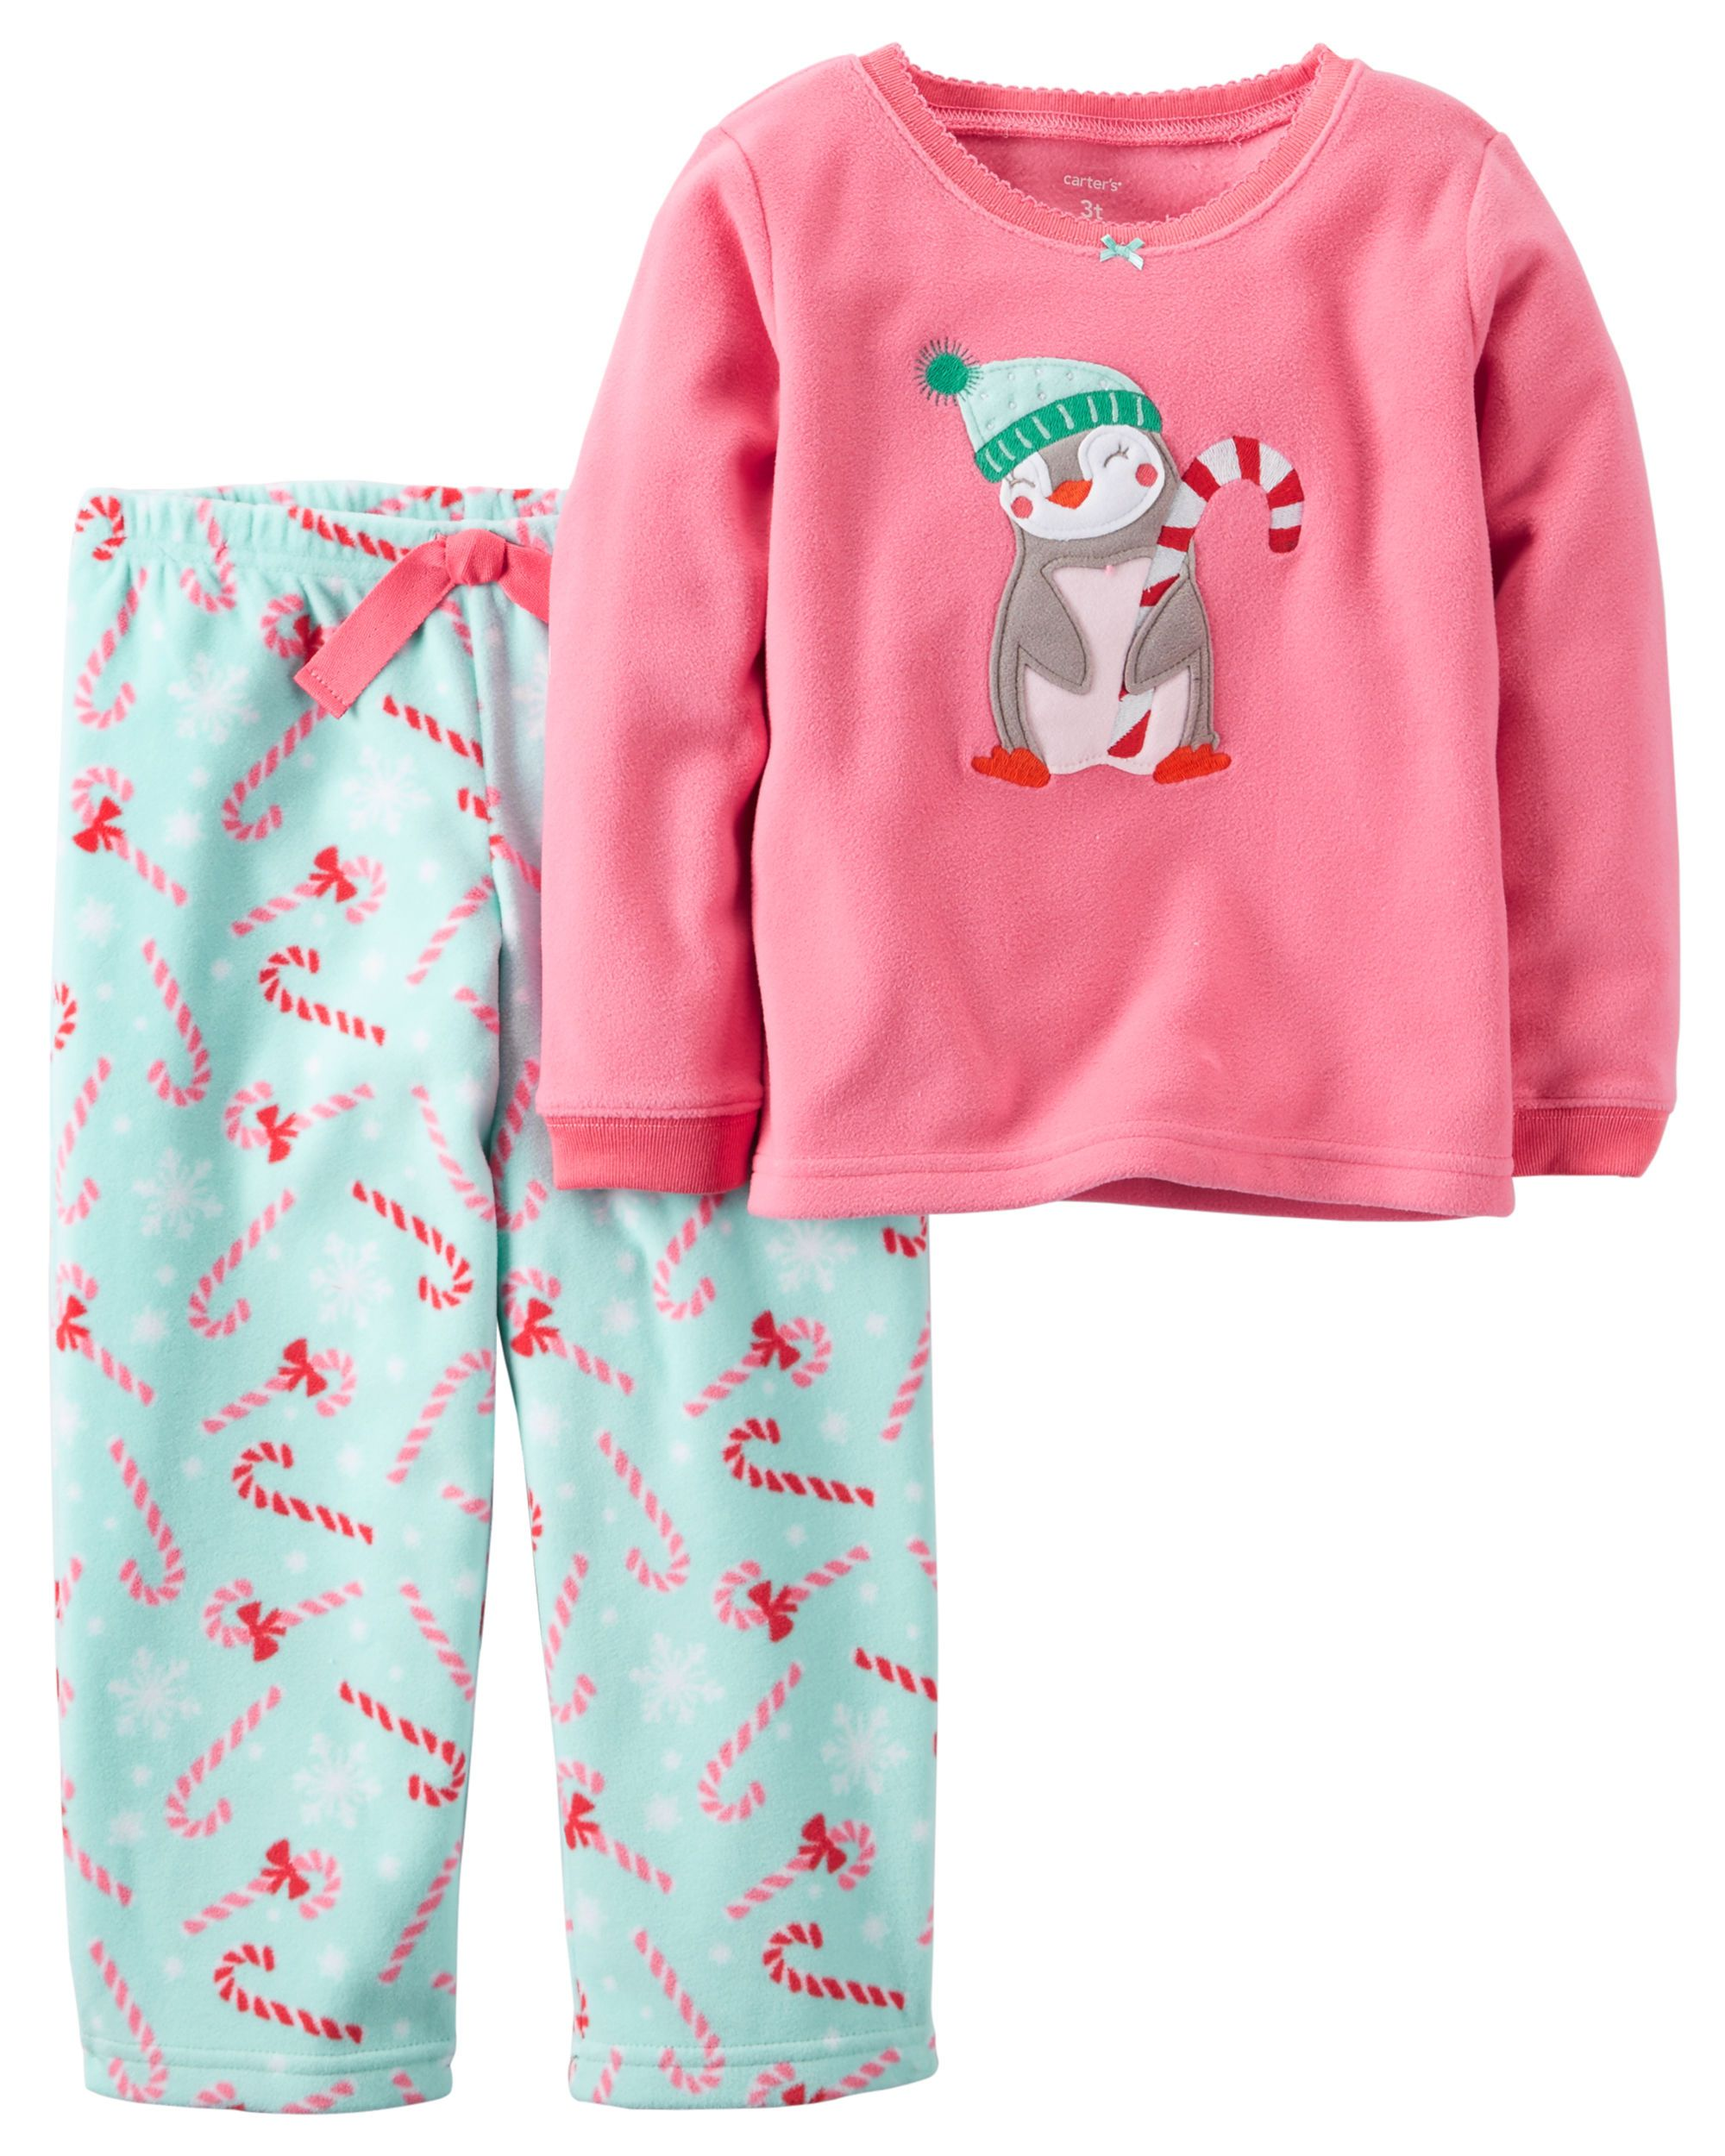 29b51e281 Toddler Girl 2-Piece Fleece Christmas PJs from Carters.com. Shop ...